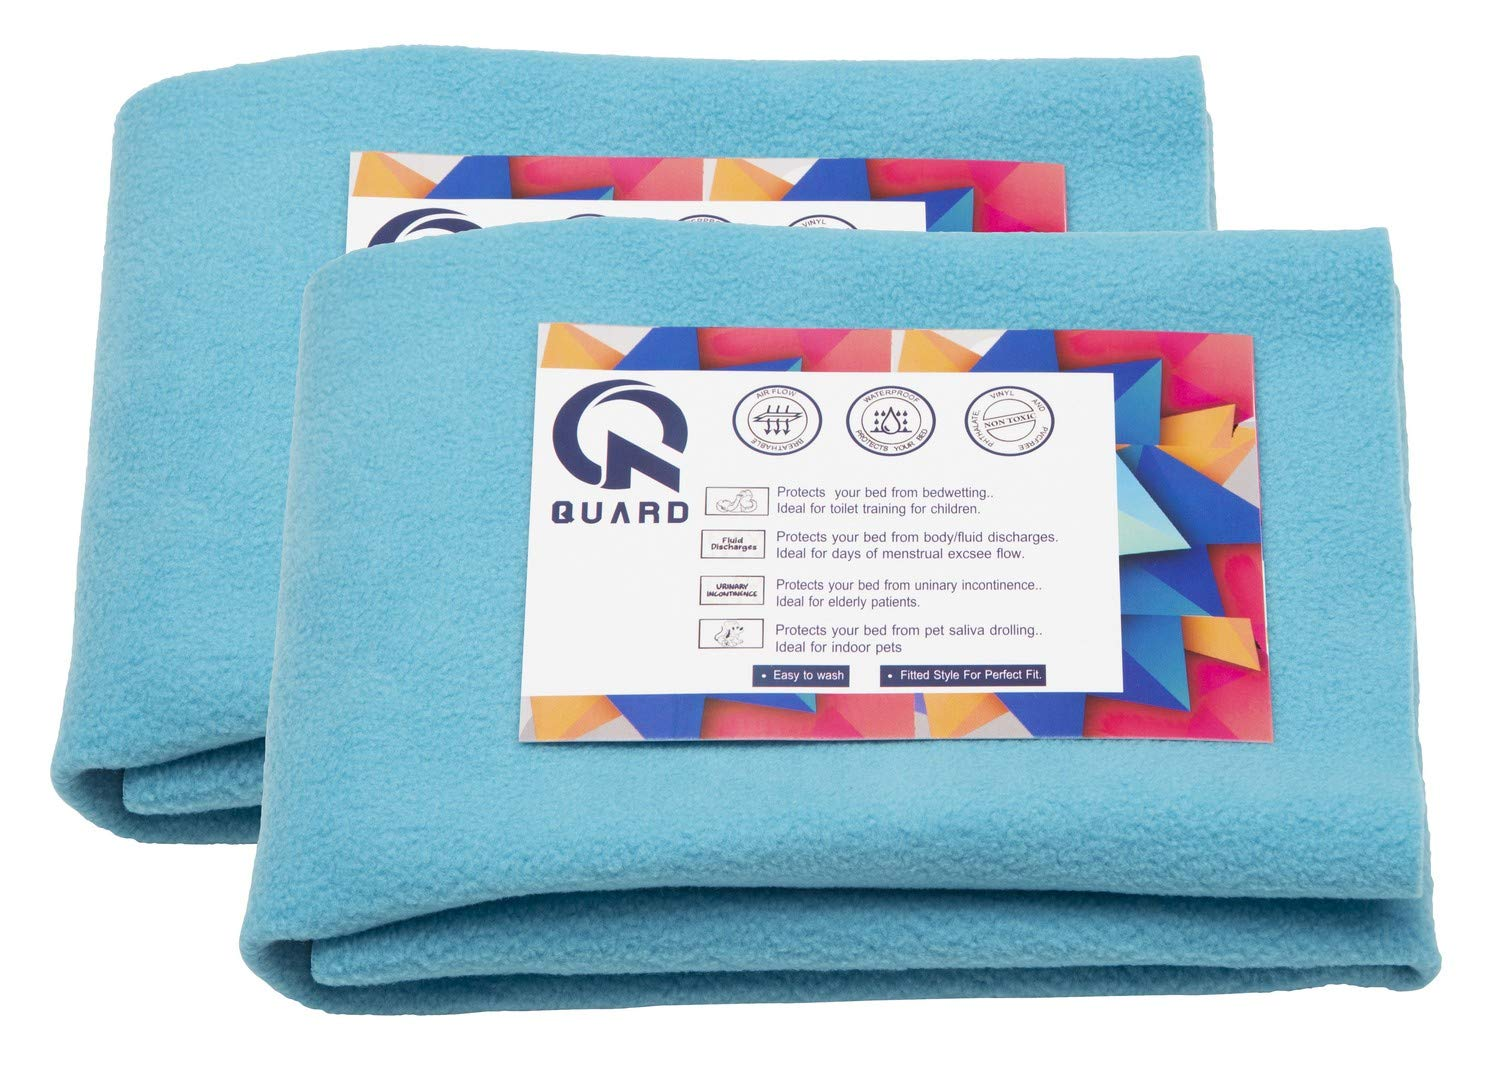 Quard Waterproof Baby Dry Sheet 70 x 50 cm (Small, Sea Blue) - Pack of 2